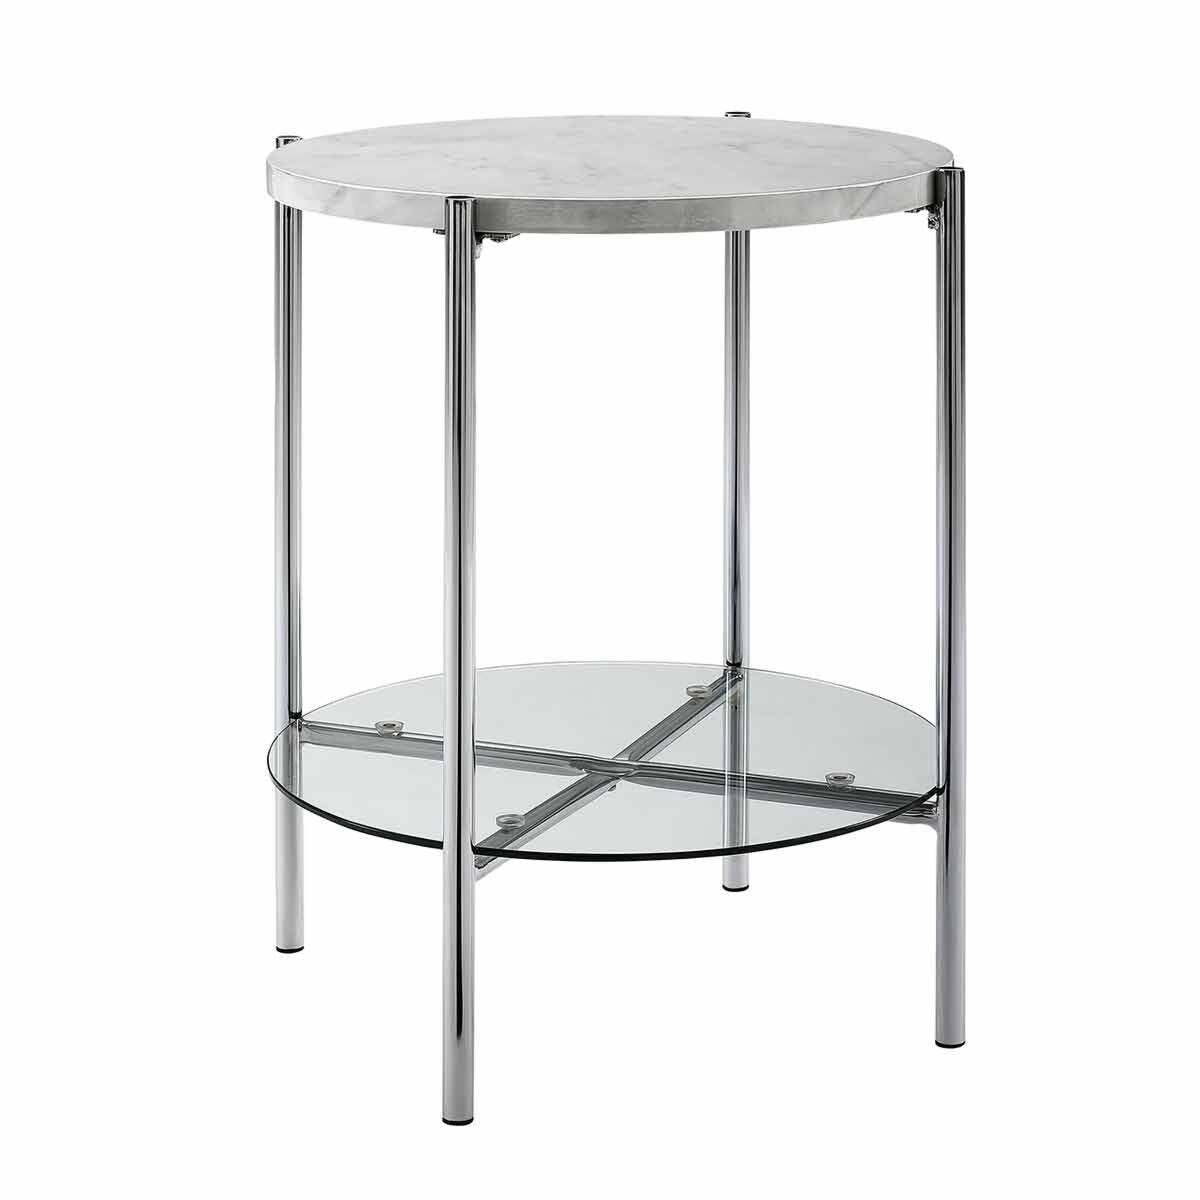 Lexington Mixed Material Round Side Table White